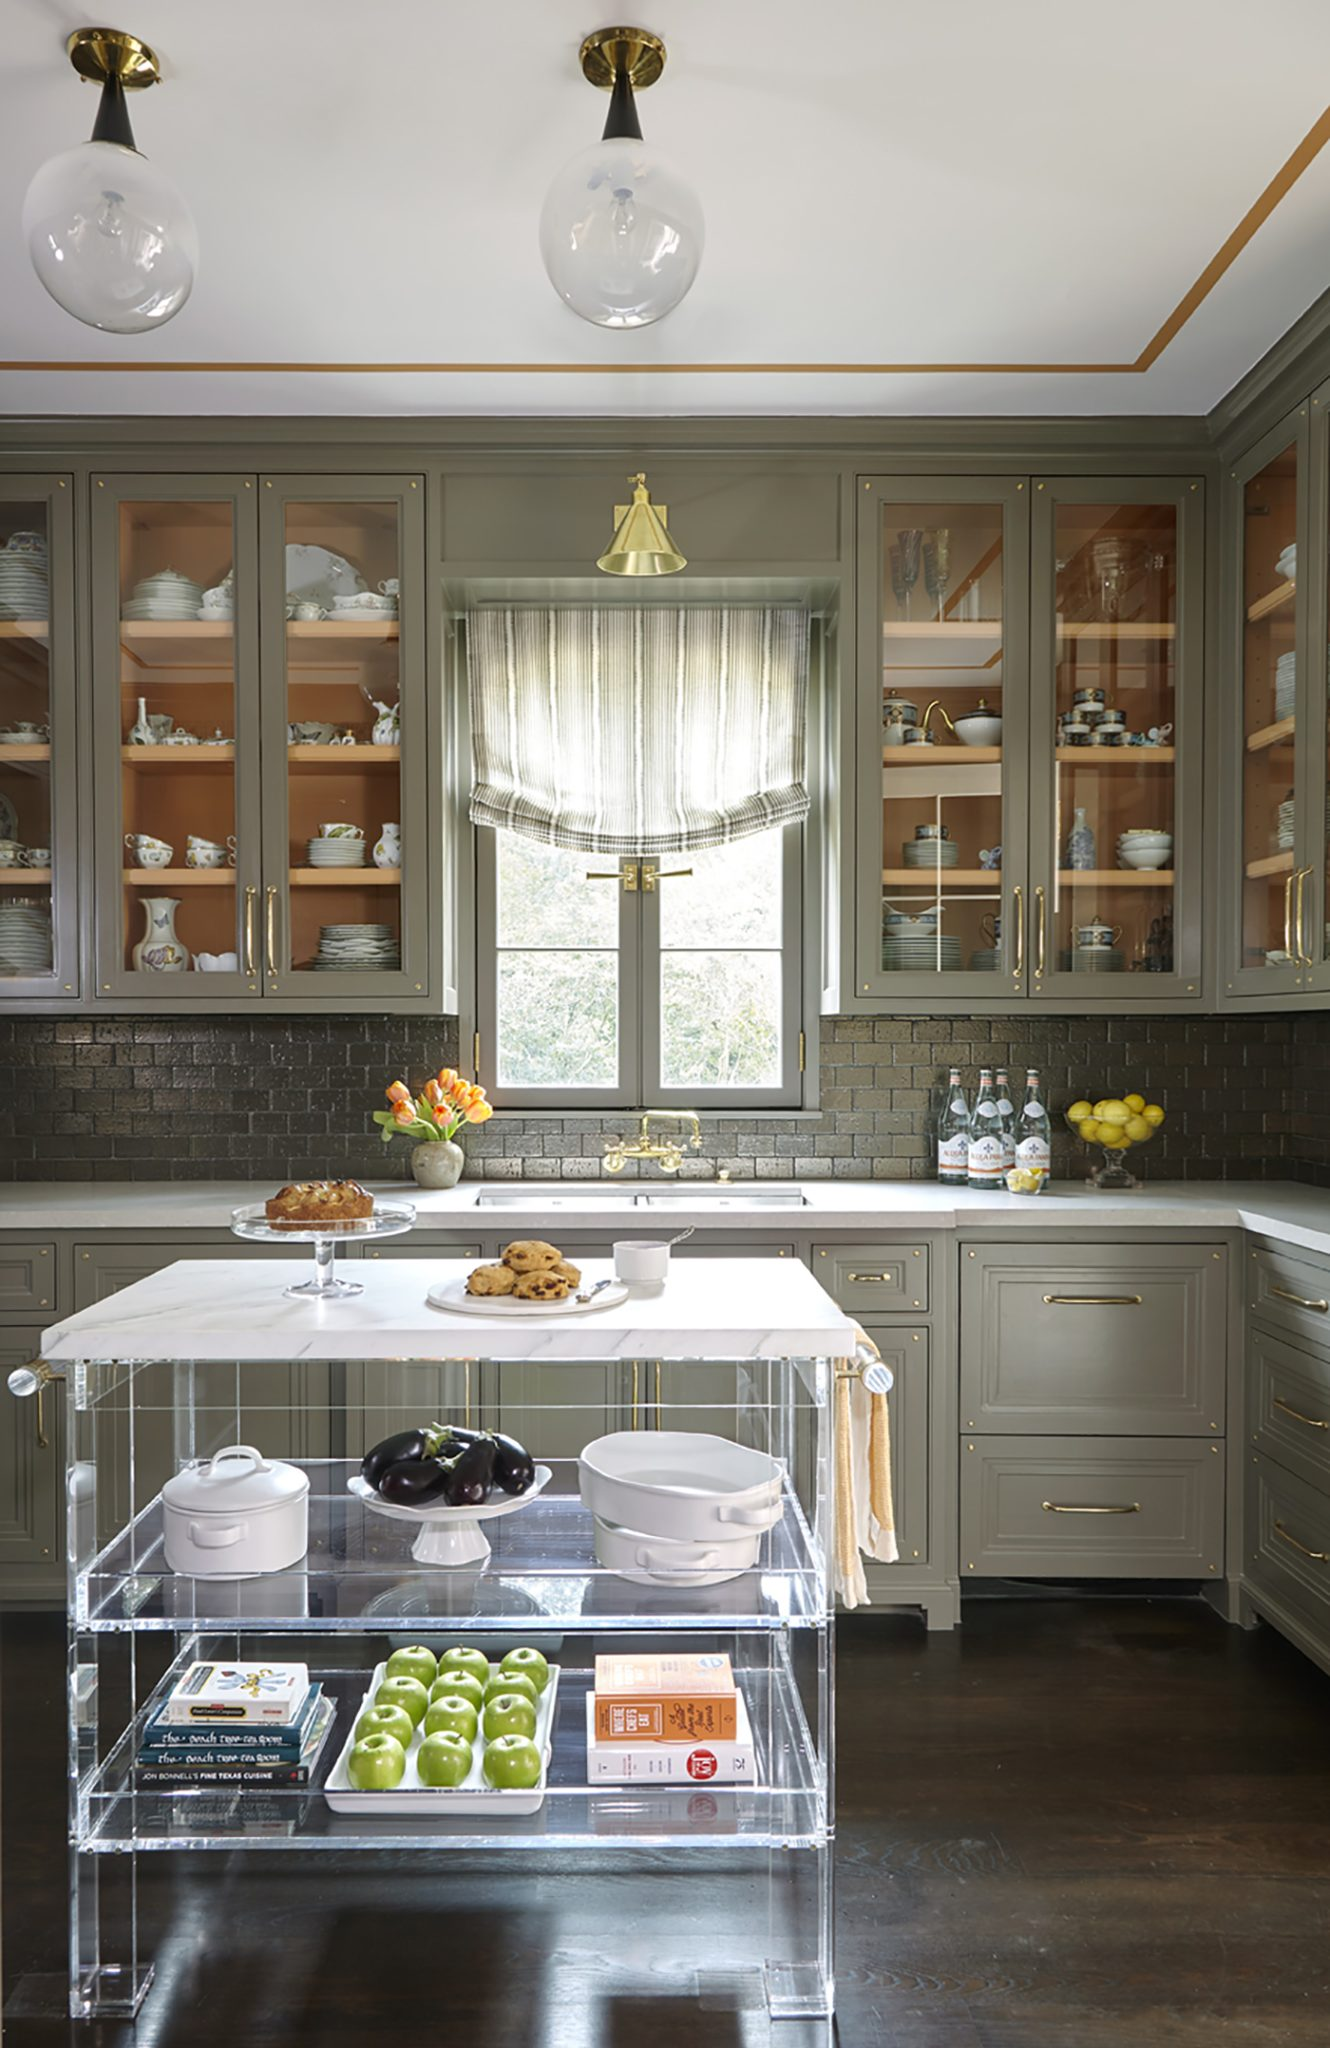 The butler's pantry relies on contemporary accents to updatea classic, French provincial look.